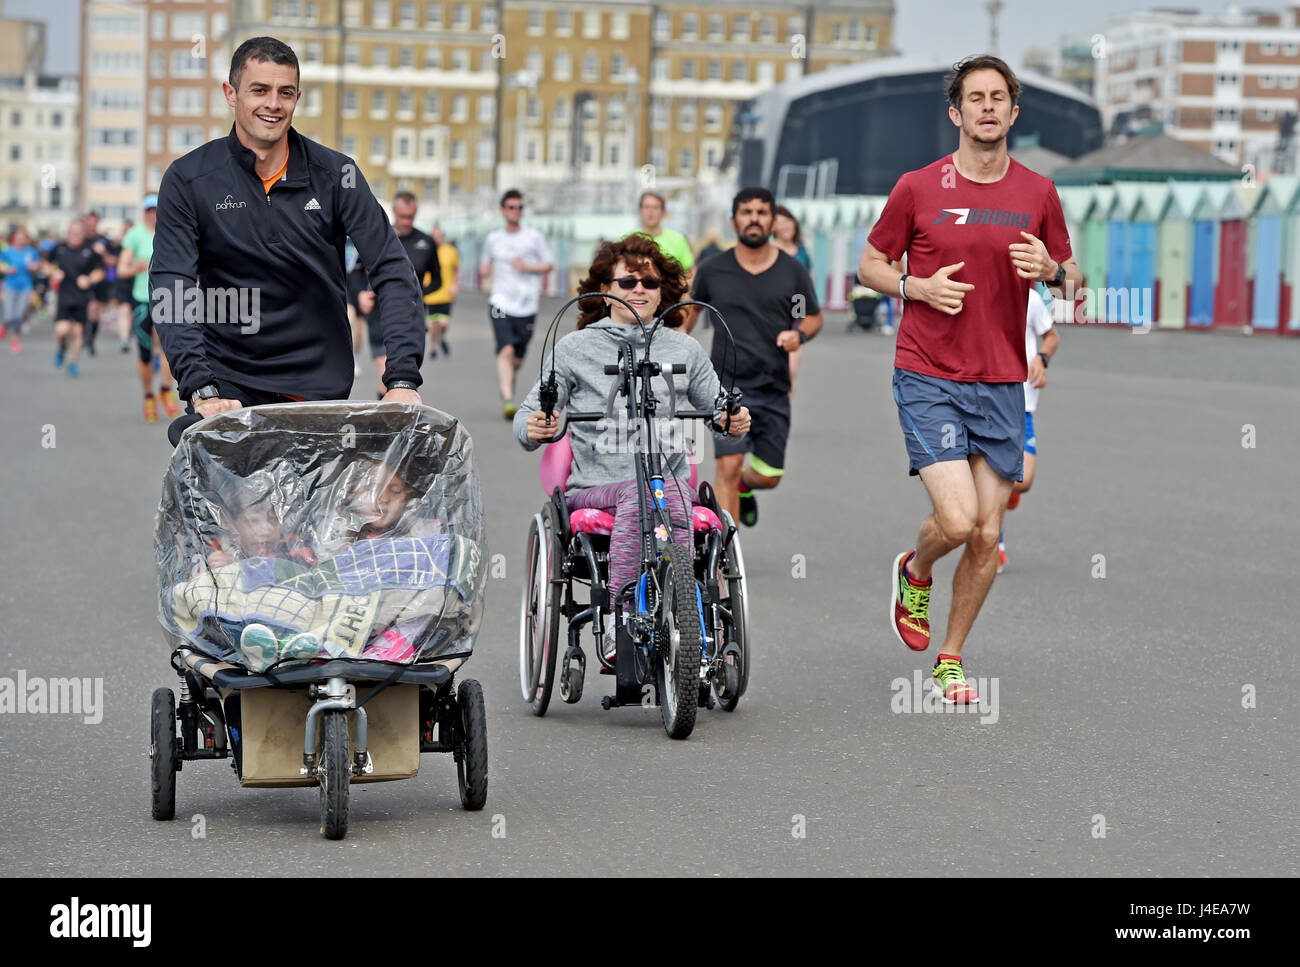 Brighton, UK. 13th May, 2017. Hundreds of people take part in the weekly Park Run fitness event along Brighton and - Stock Image